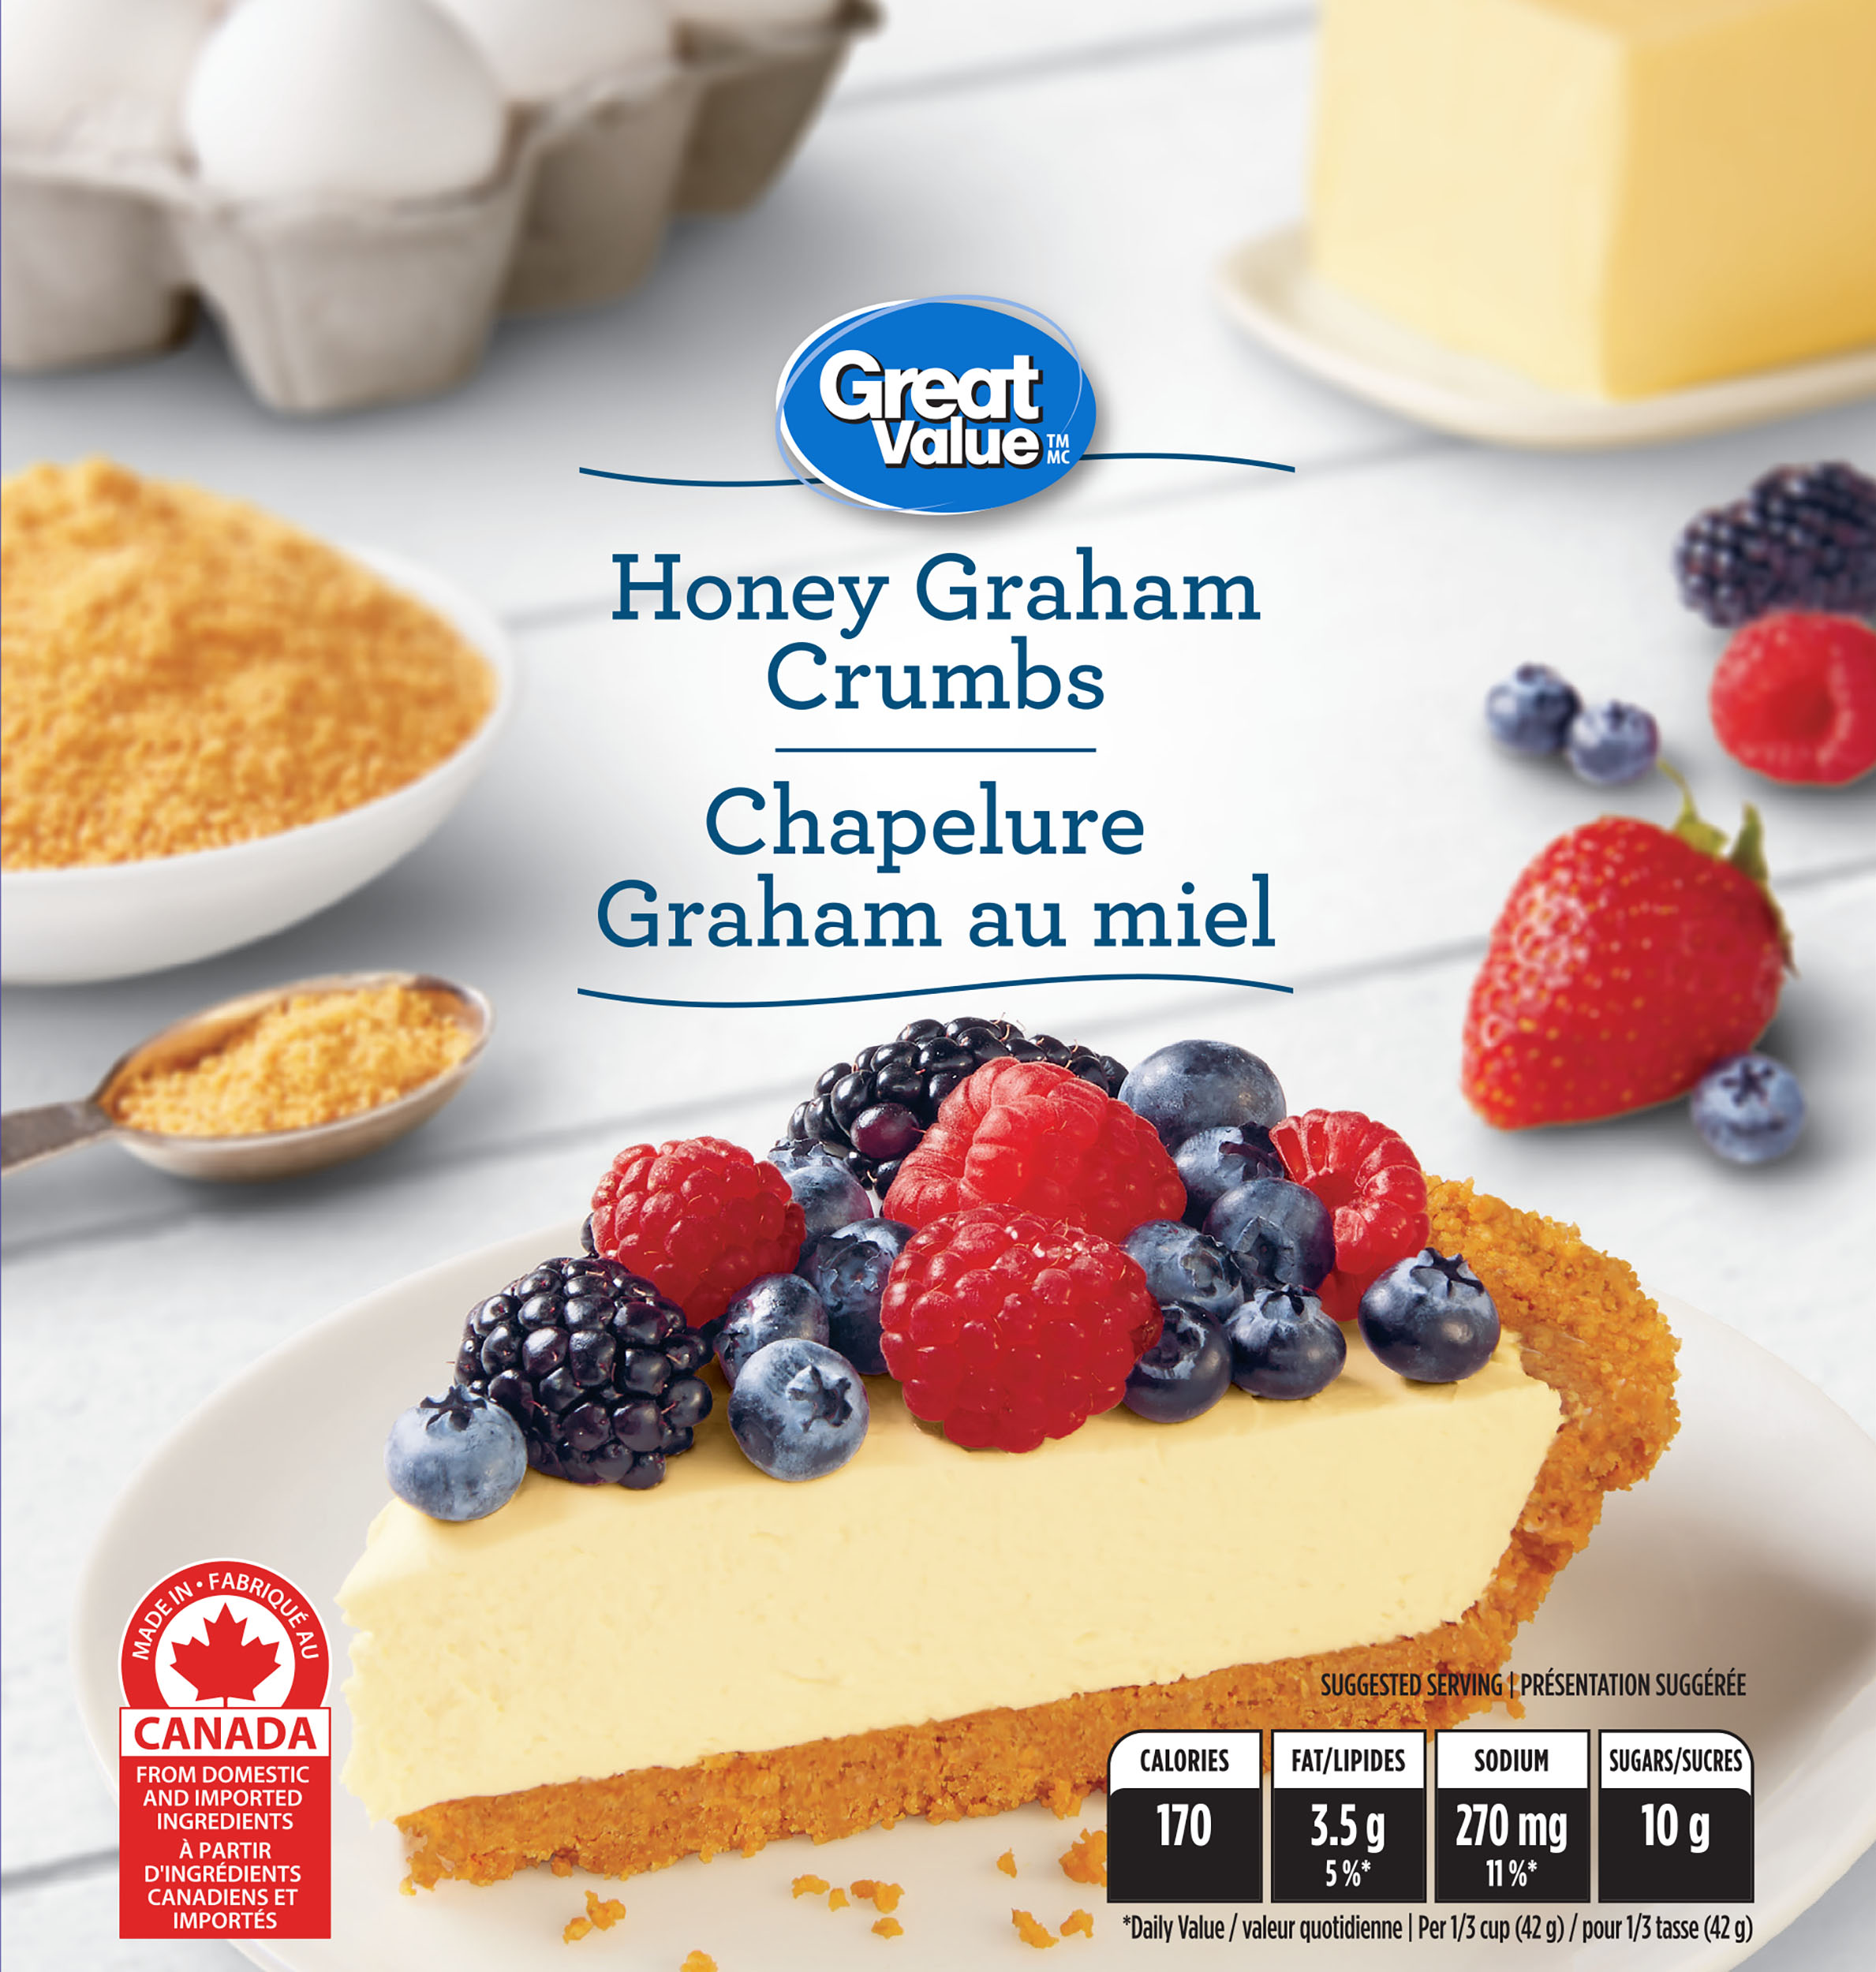 GrahamBakingCrumbs400g_caGUM_bag_Final_LR-2